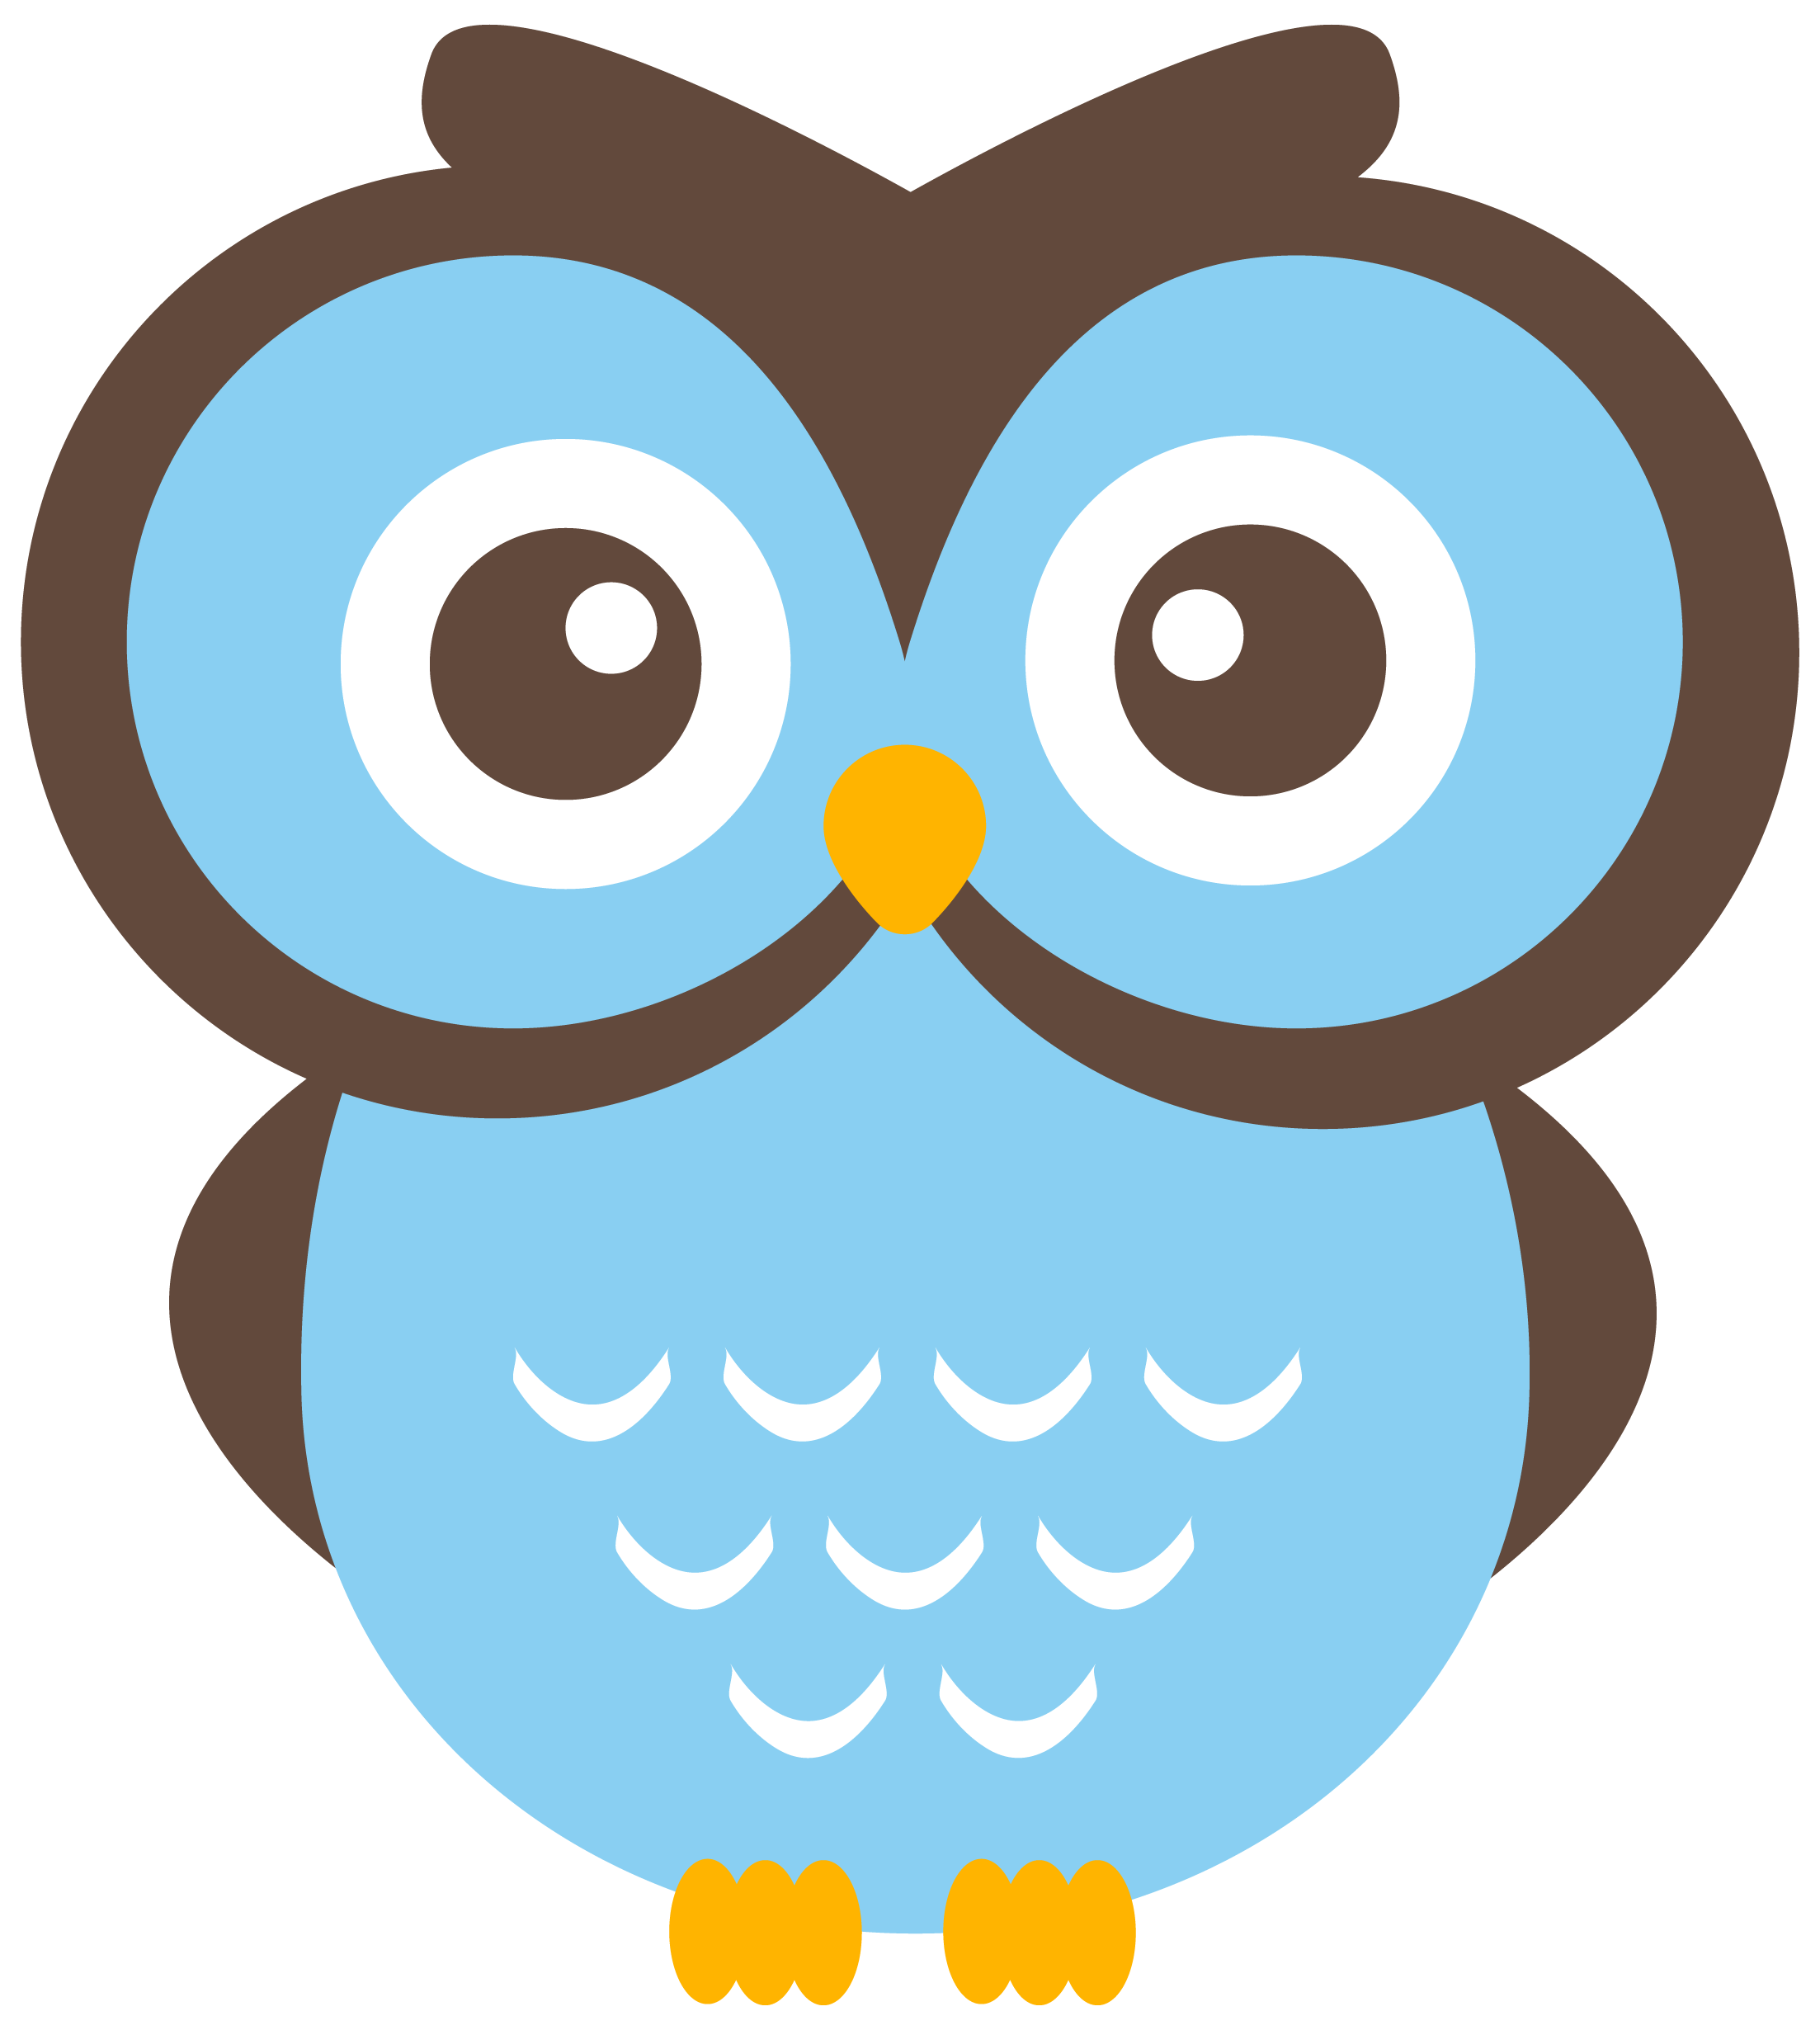 owls on owl clip art owl and cartoon owls image 5 quilting rh pinterest com au owl clip art free images owl clip art silhouette